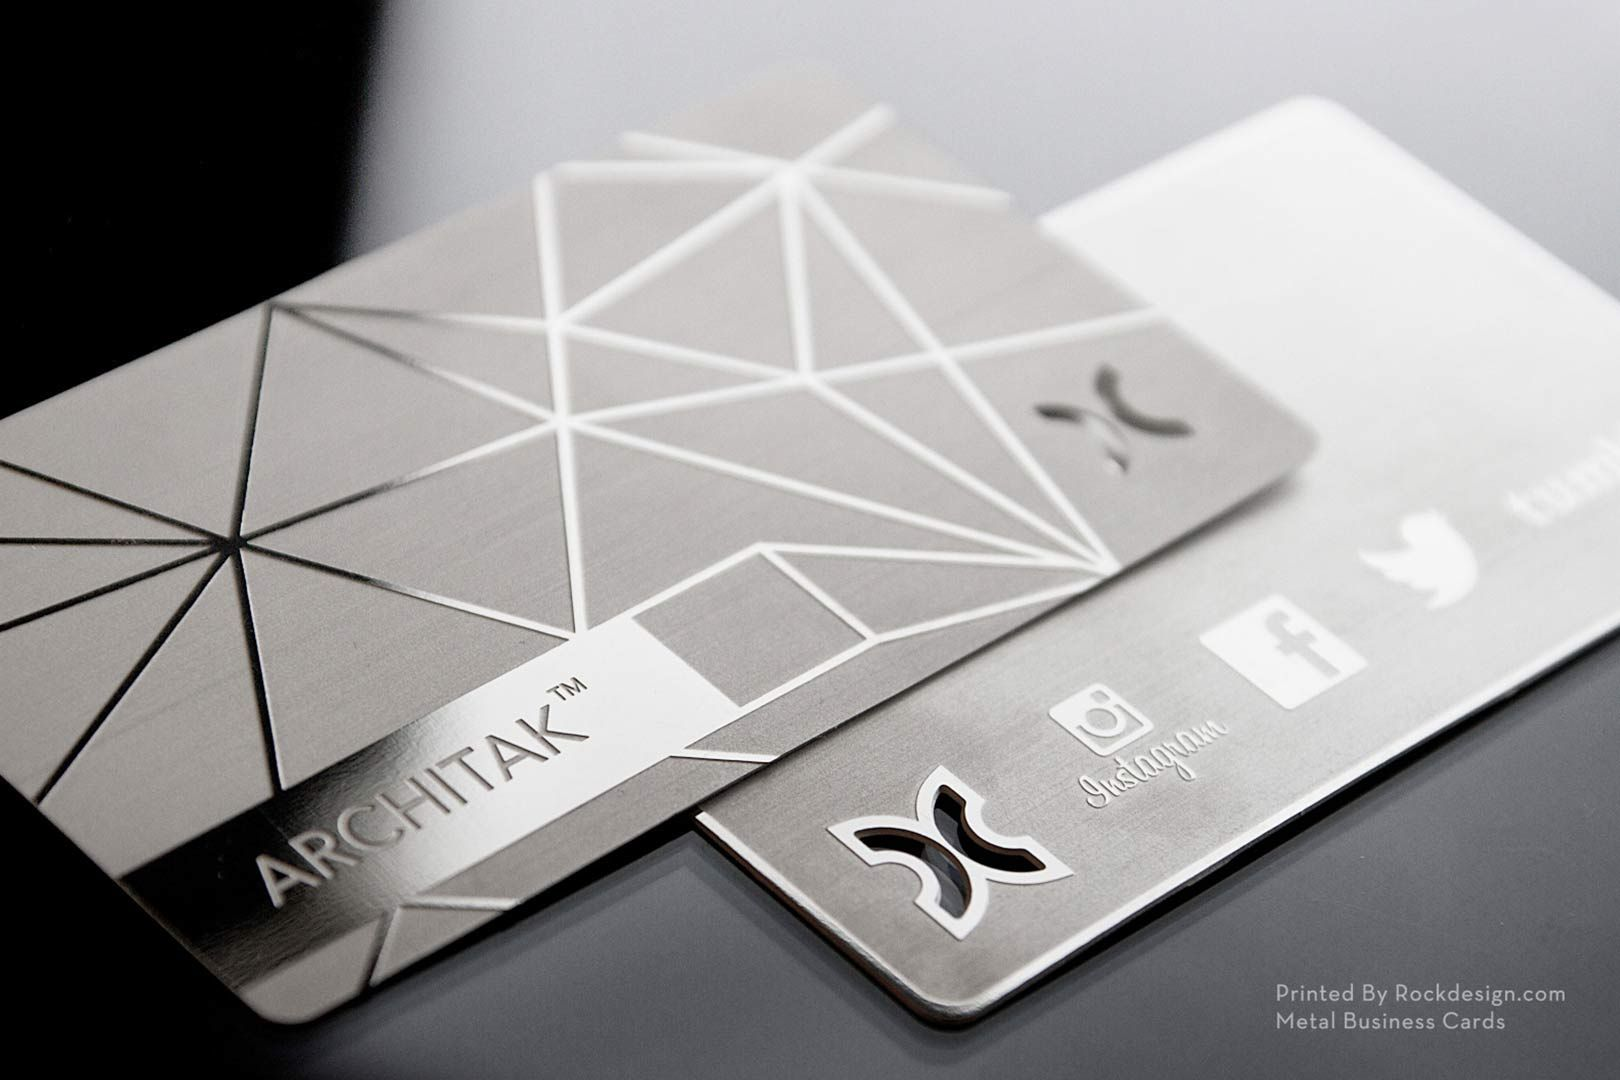 stainless steel business cards rockdesign luxury business card printing